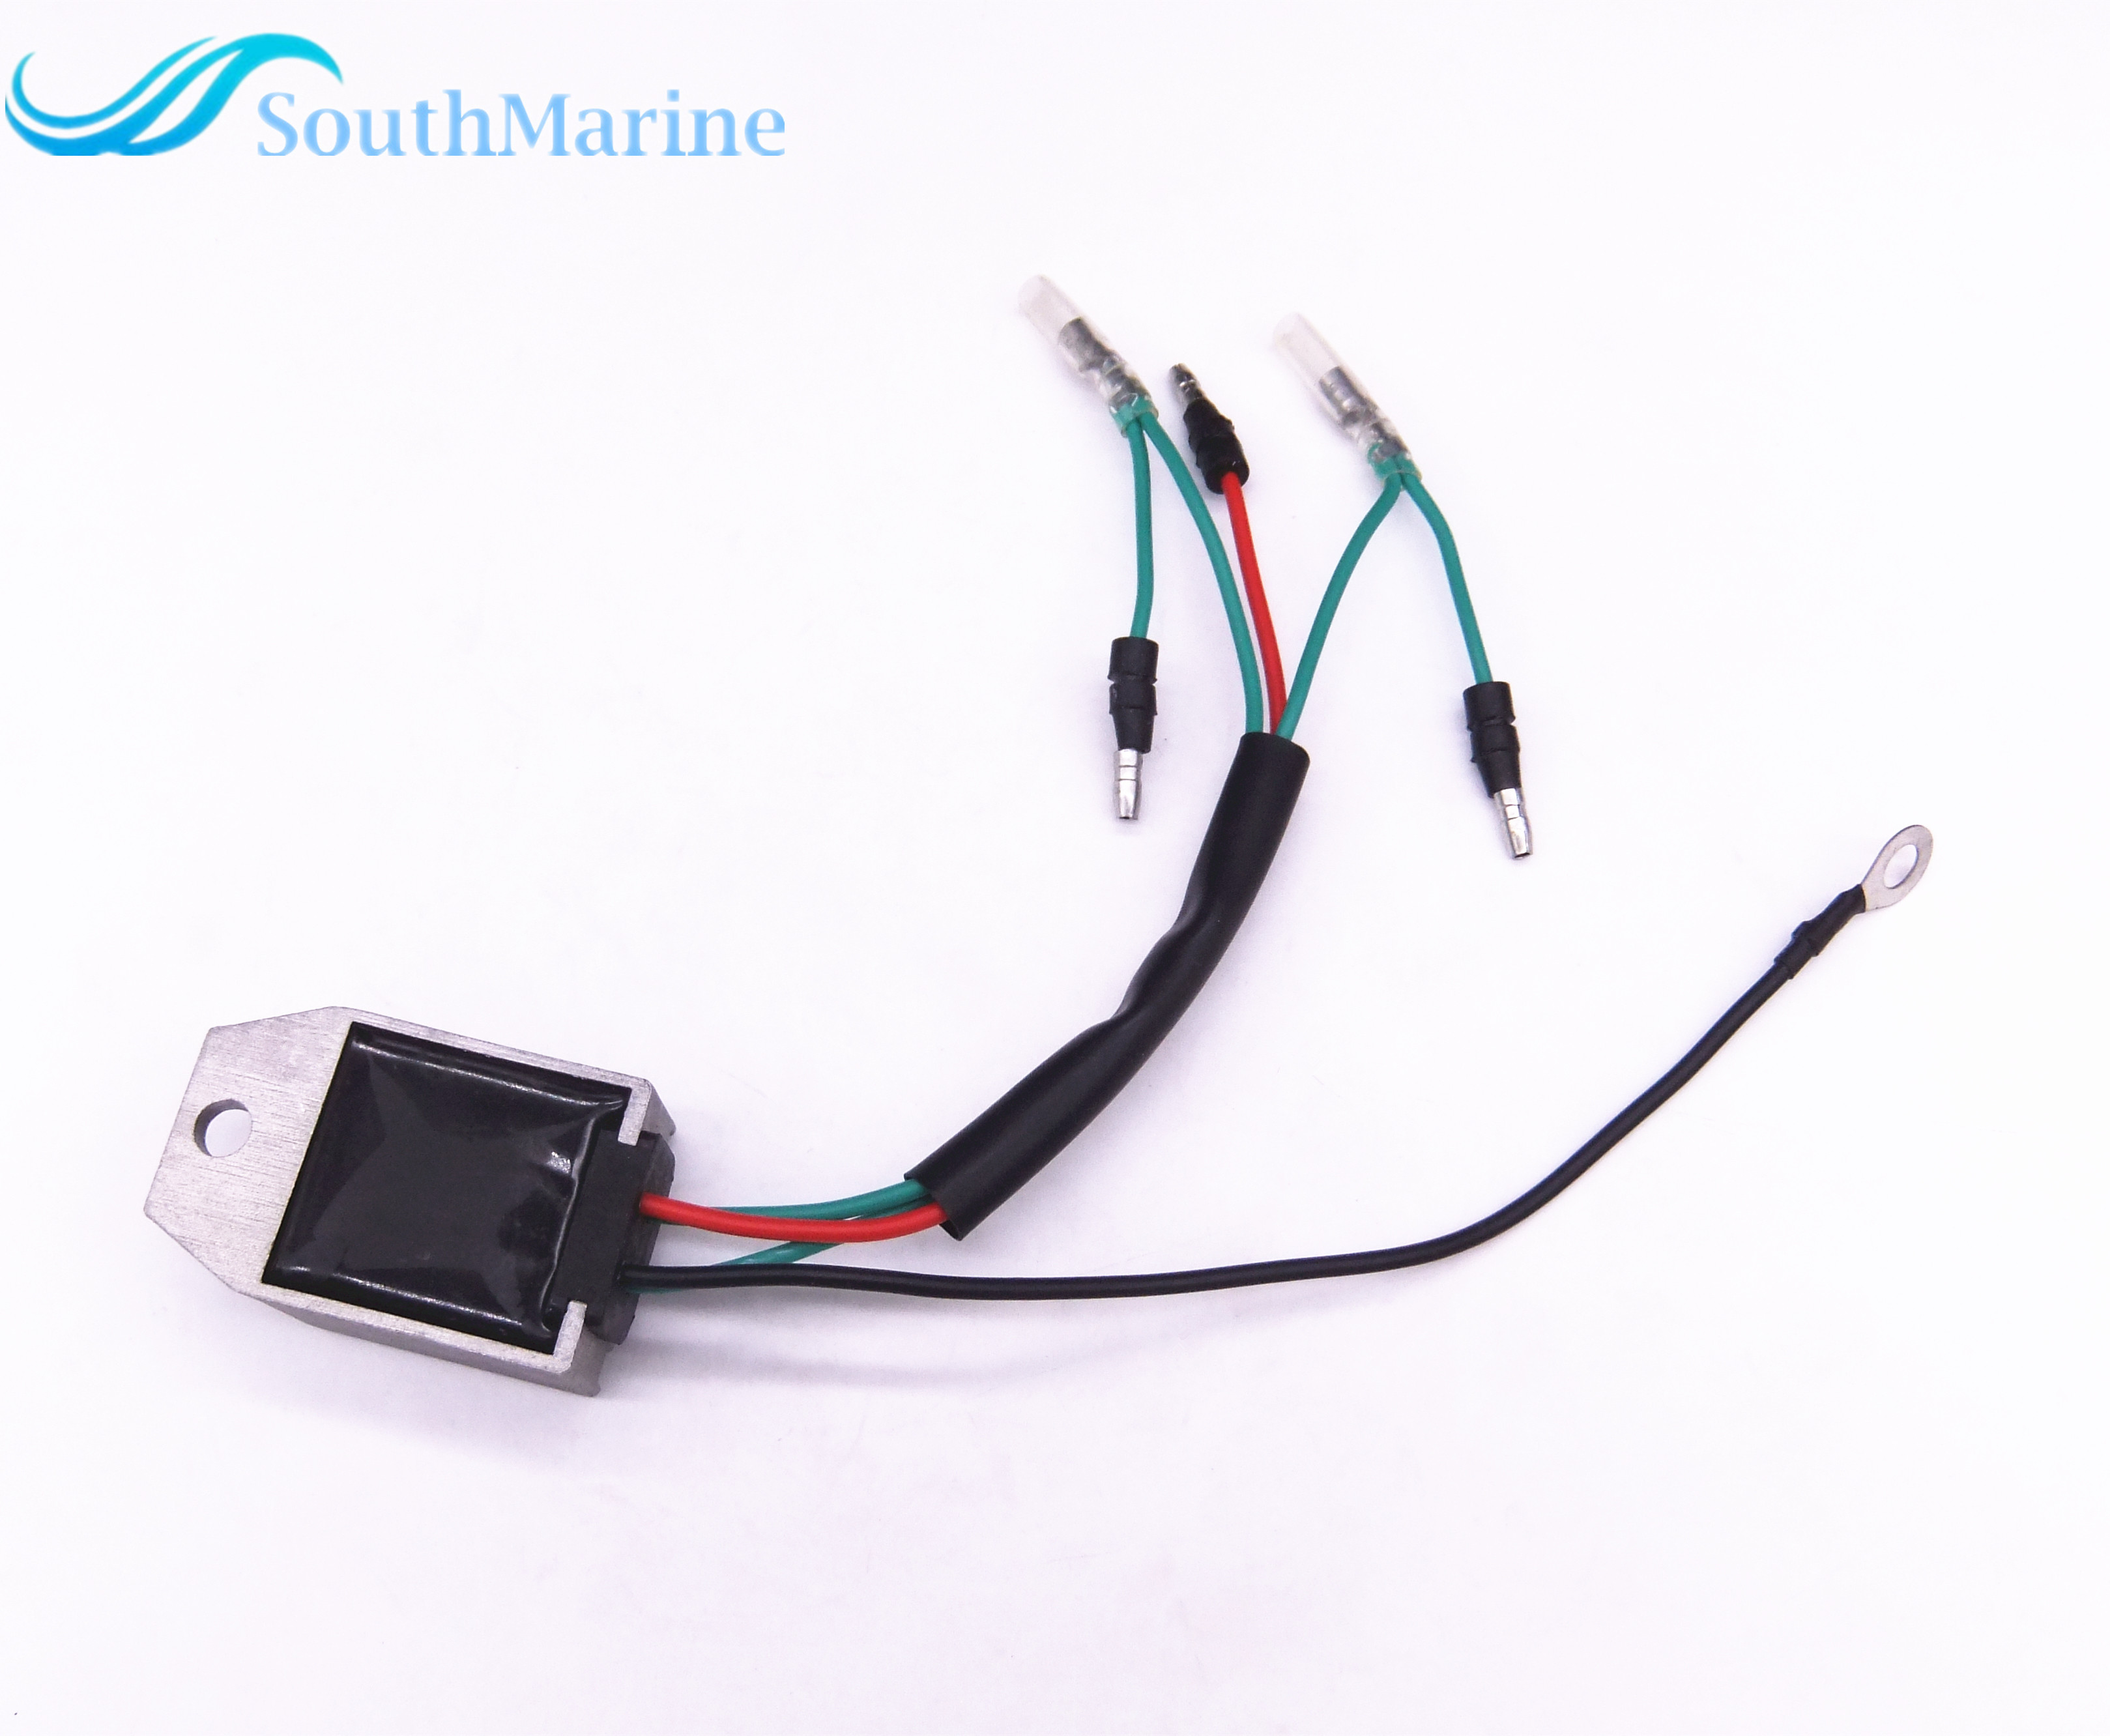 hight resolution of boat motor rectifier regulator assy 6j8 81960 00 for yamaha outboard motors in boat engine from automobiles motorcycles on aliexpress com alibaba